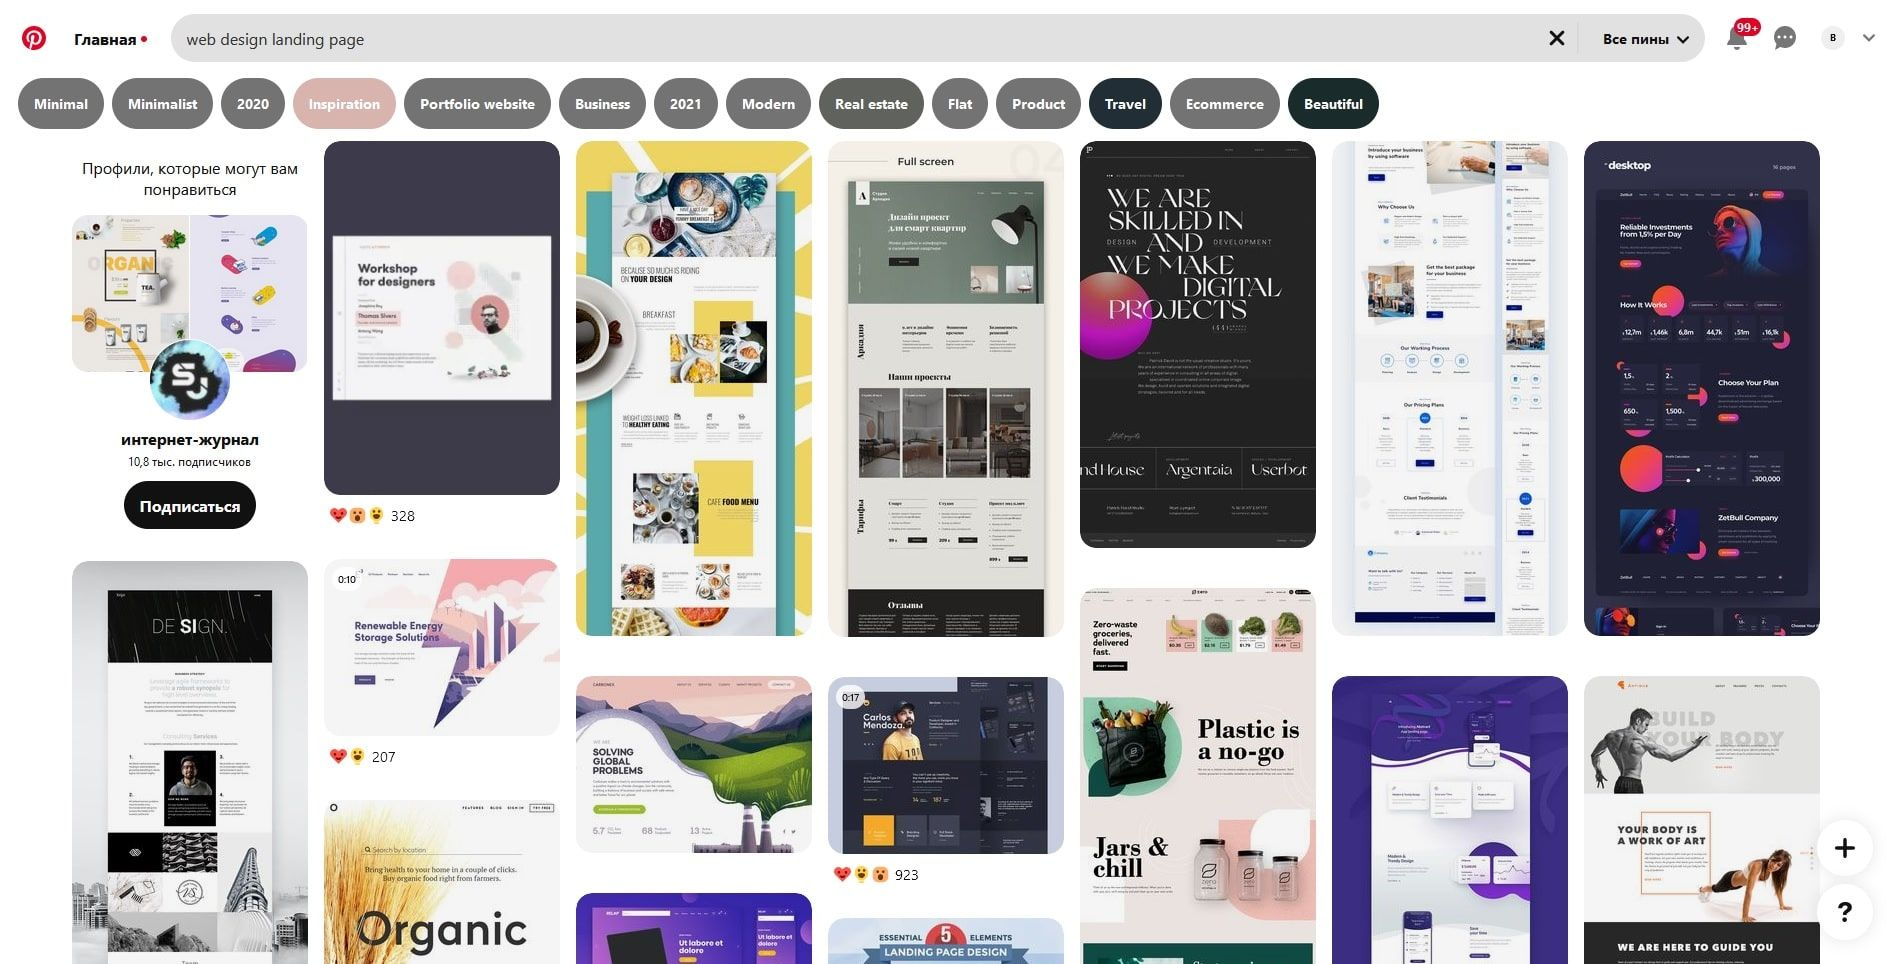 Pinterest has tons of ideas for creating informative, engaging and branding content